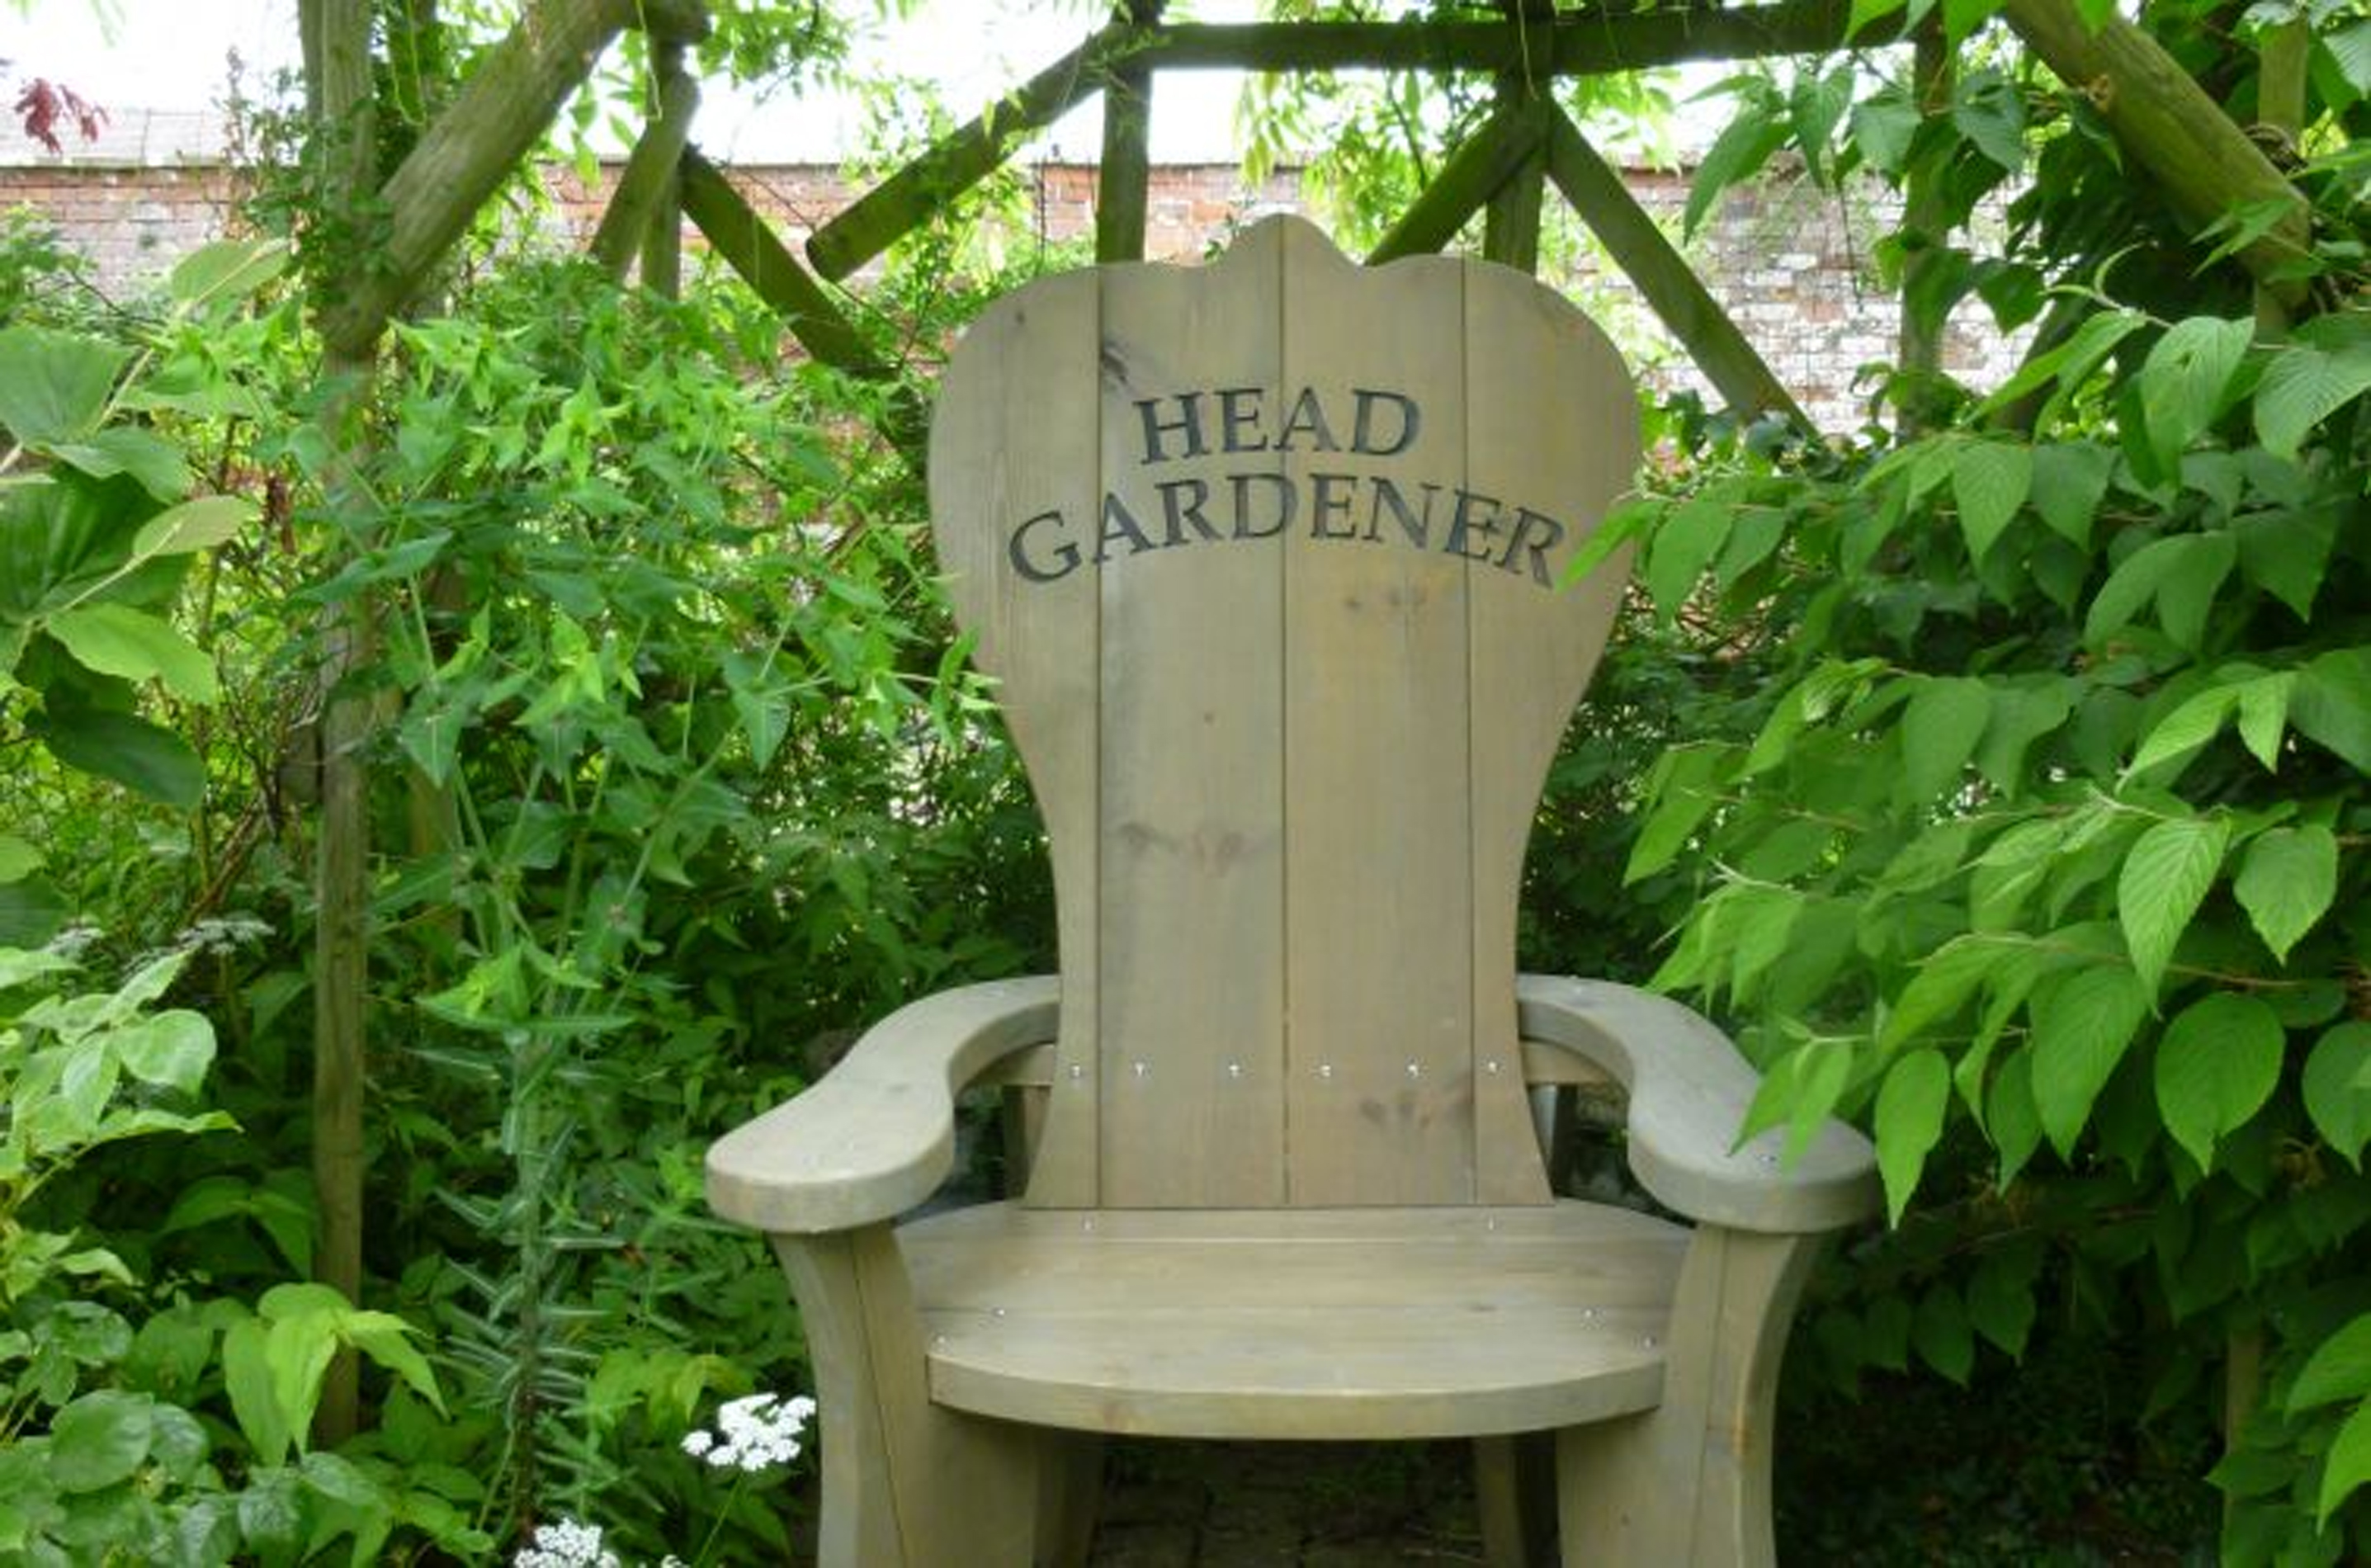 Personalise a garden chair for your dad (The Posh Shed Company/PA)